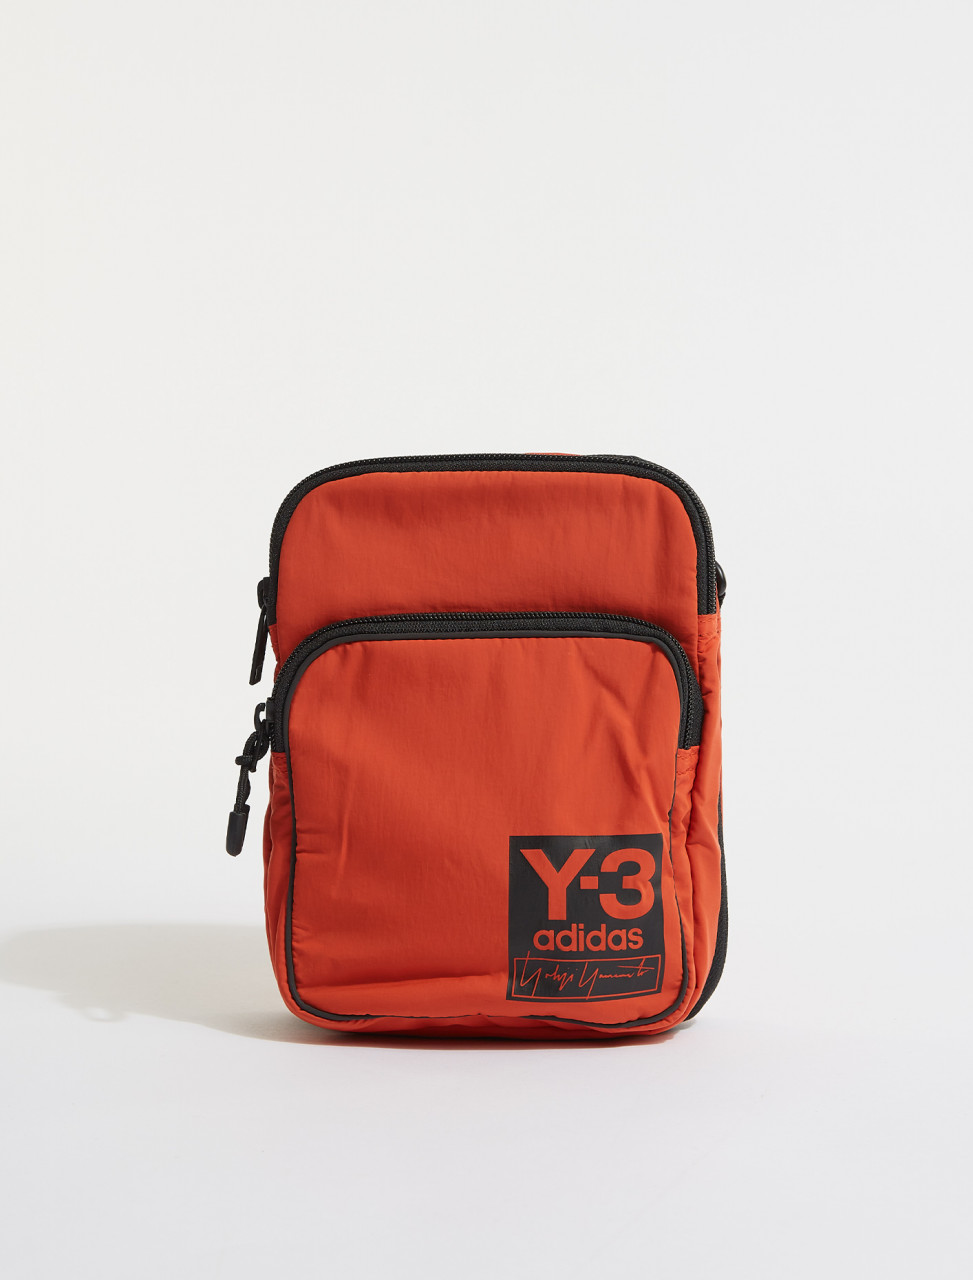 165-FH9250 Y-3 PK ARILINER ICON ORANGE BLACK